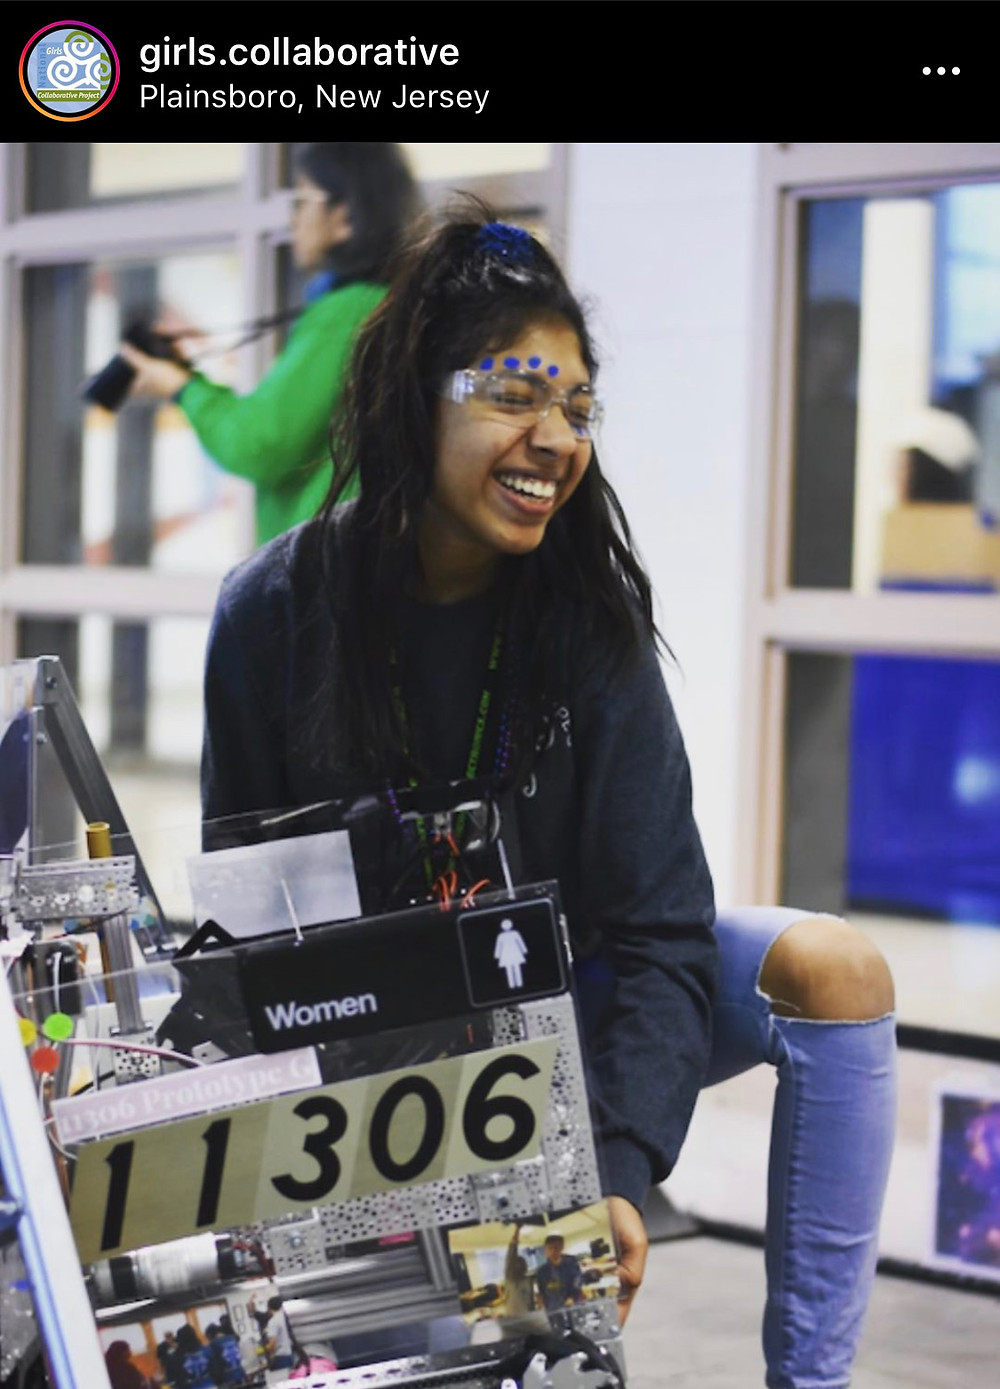 Meet Girls Advisory Board member, Shreya! On our @Girls.Collaborative IG feed, we frequently post membership spotlights with personalized STEM resource recommendations from each featured member.